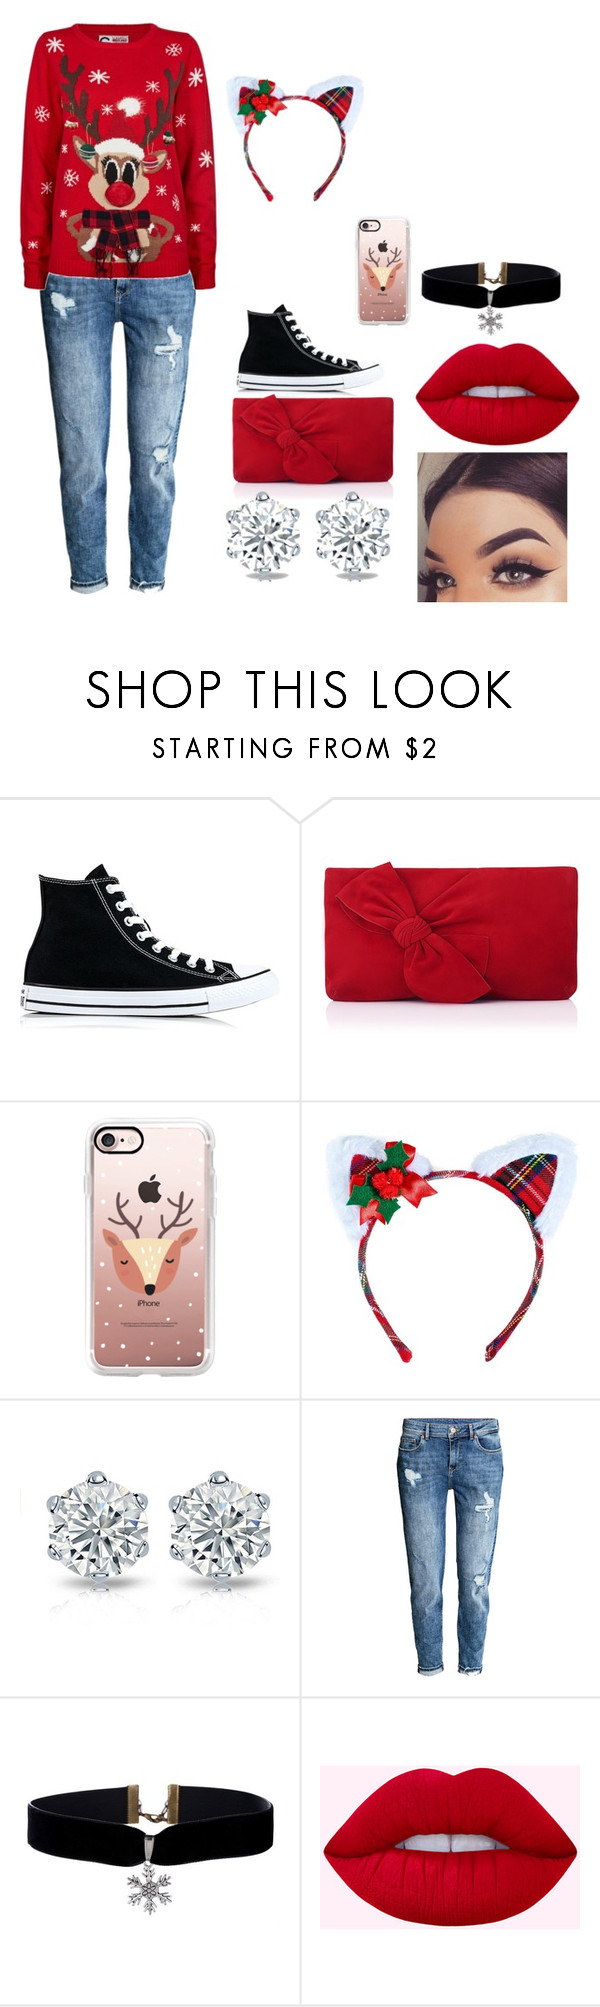 """""""Christmas stuff"""" by chassandraward ❤ liked on Polyvore featuring Converse, L.K.Bennett, Casetify and Leg Avenue"""